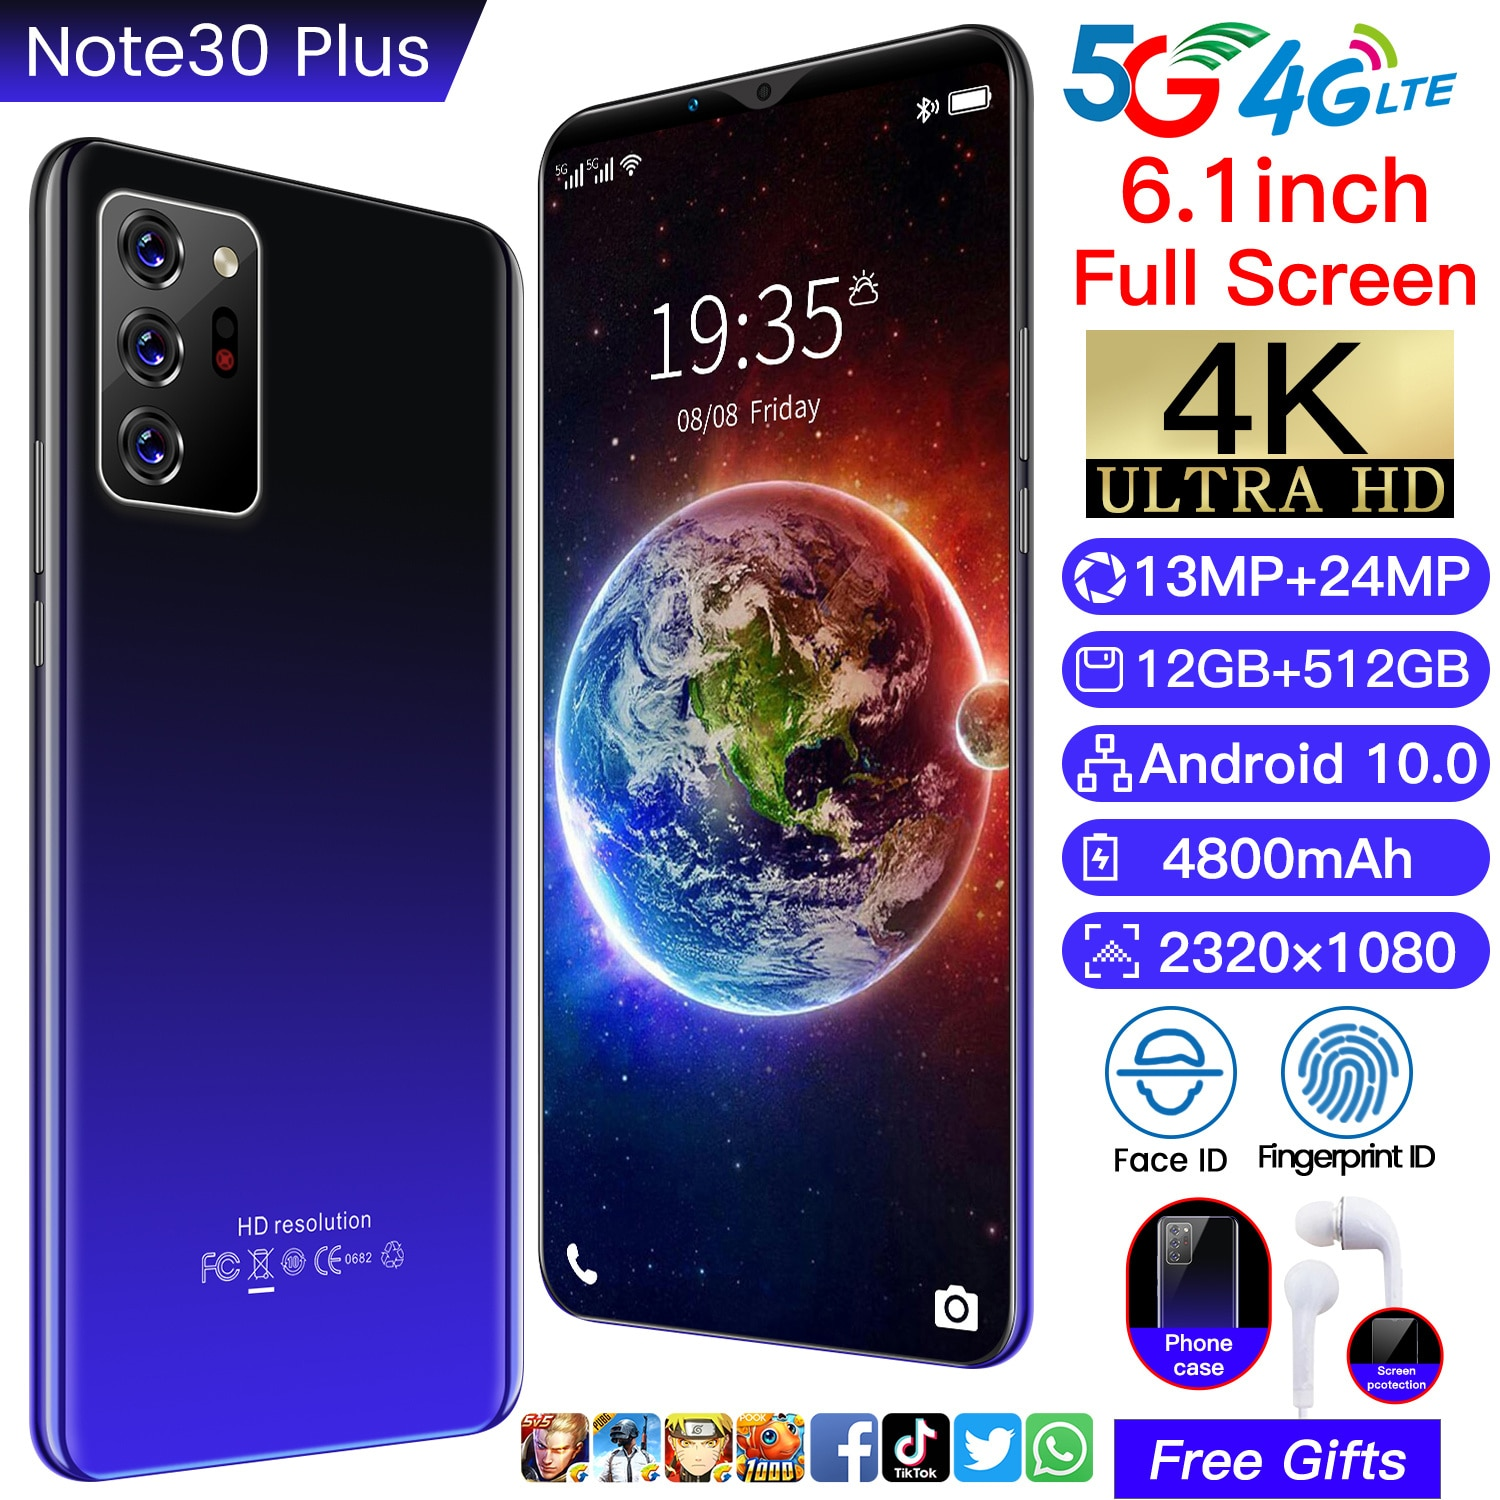 Note30 Plus Cellphone 6.1 Inch 10 Core 4800Amh Face Unlock Smartphone 2320*1080 12GB+512GB 13MP+24MP Andriod 10 Network Phone enlarge